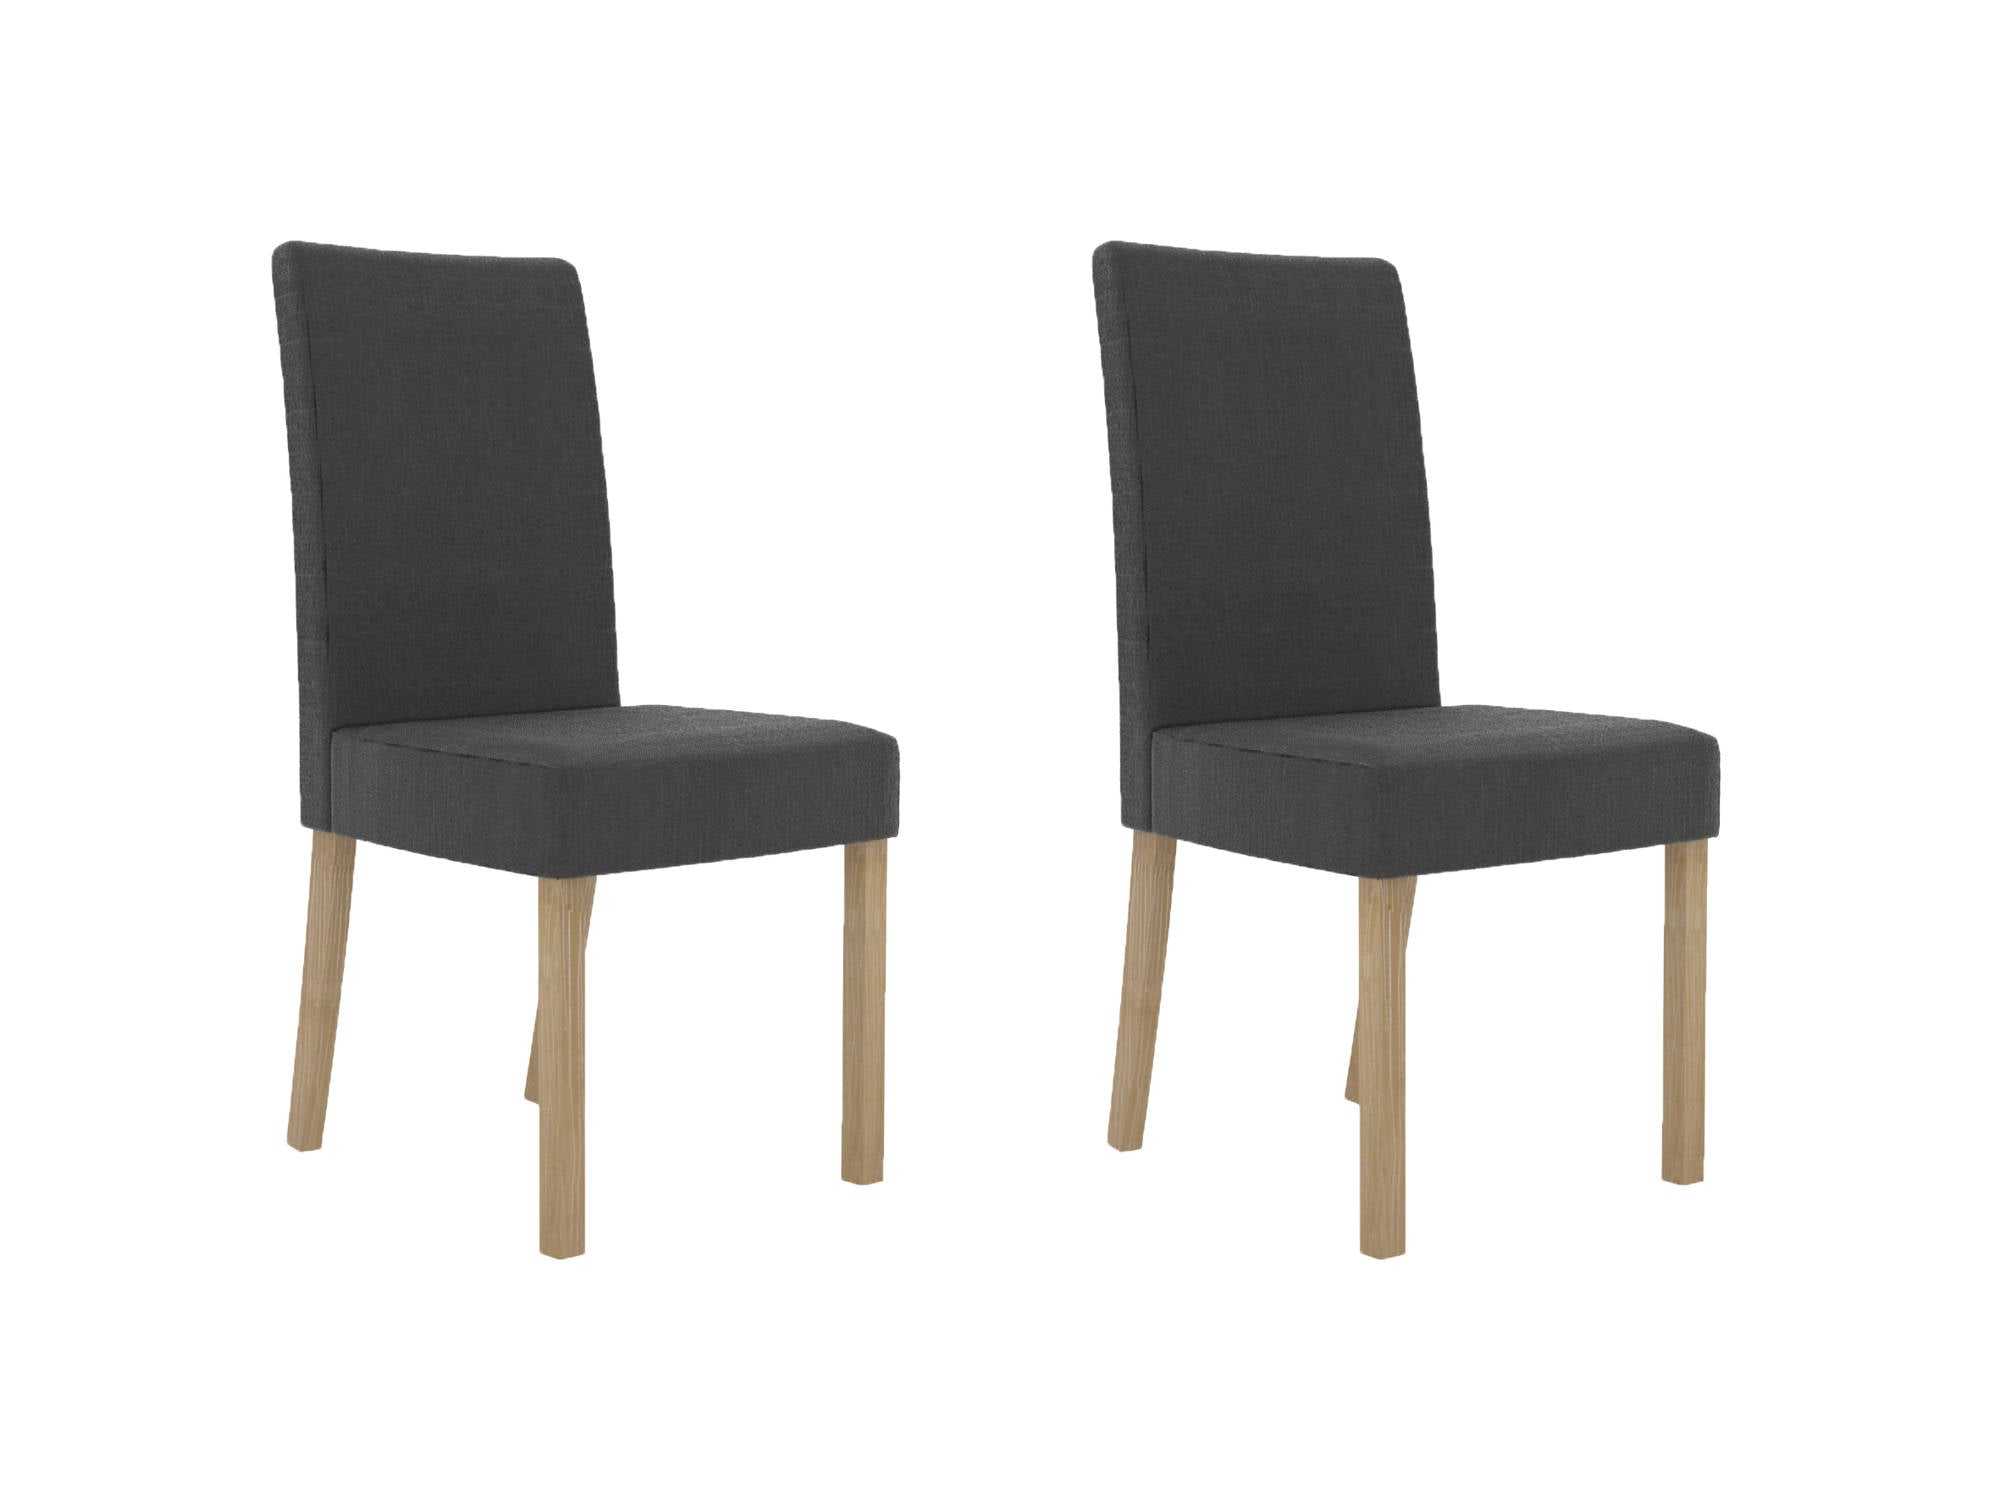 Carillon Dining Chairs in Dark Charcoal - Ezzo